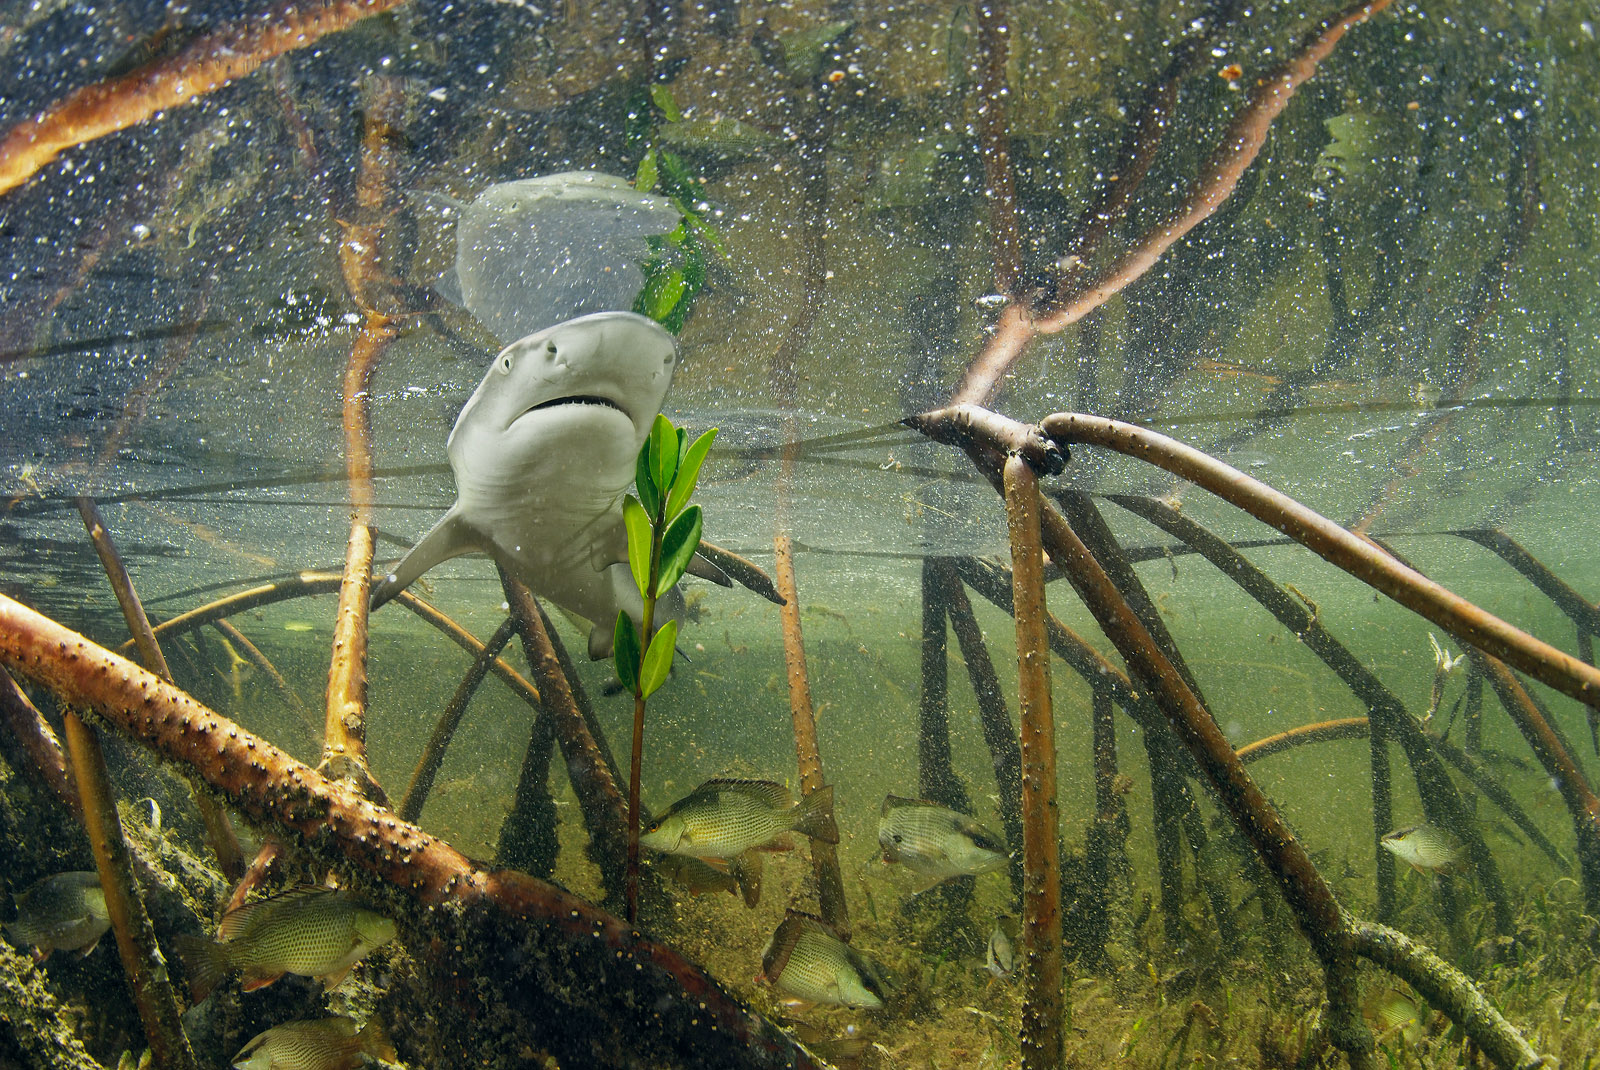 A lemon shark pup swims through its shallow mangrove nursery off the coast of Bimini Island in the Bahamas.<div class='credit'><strong>Credit:</strong> A lemon shark pup swims through its shallow mangrove nursery off the coast of Bimini Island in the Bahamas.</div>